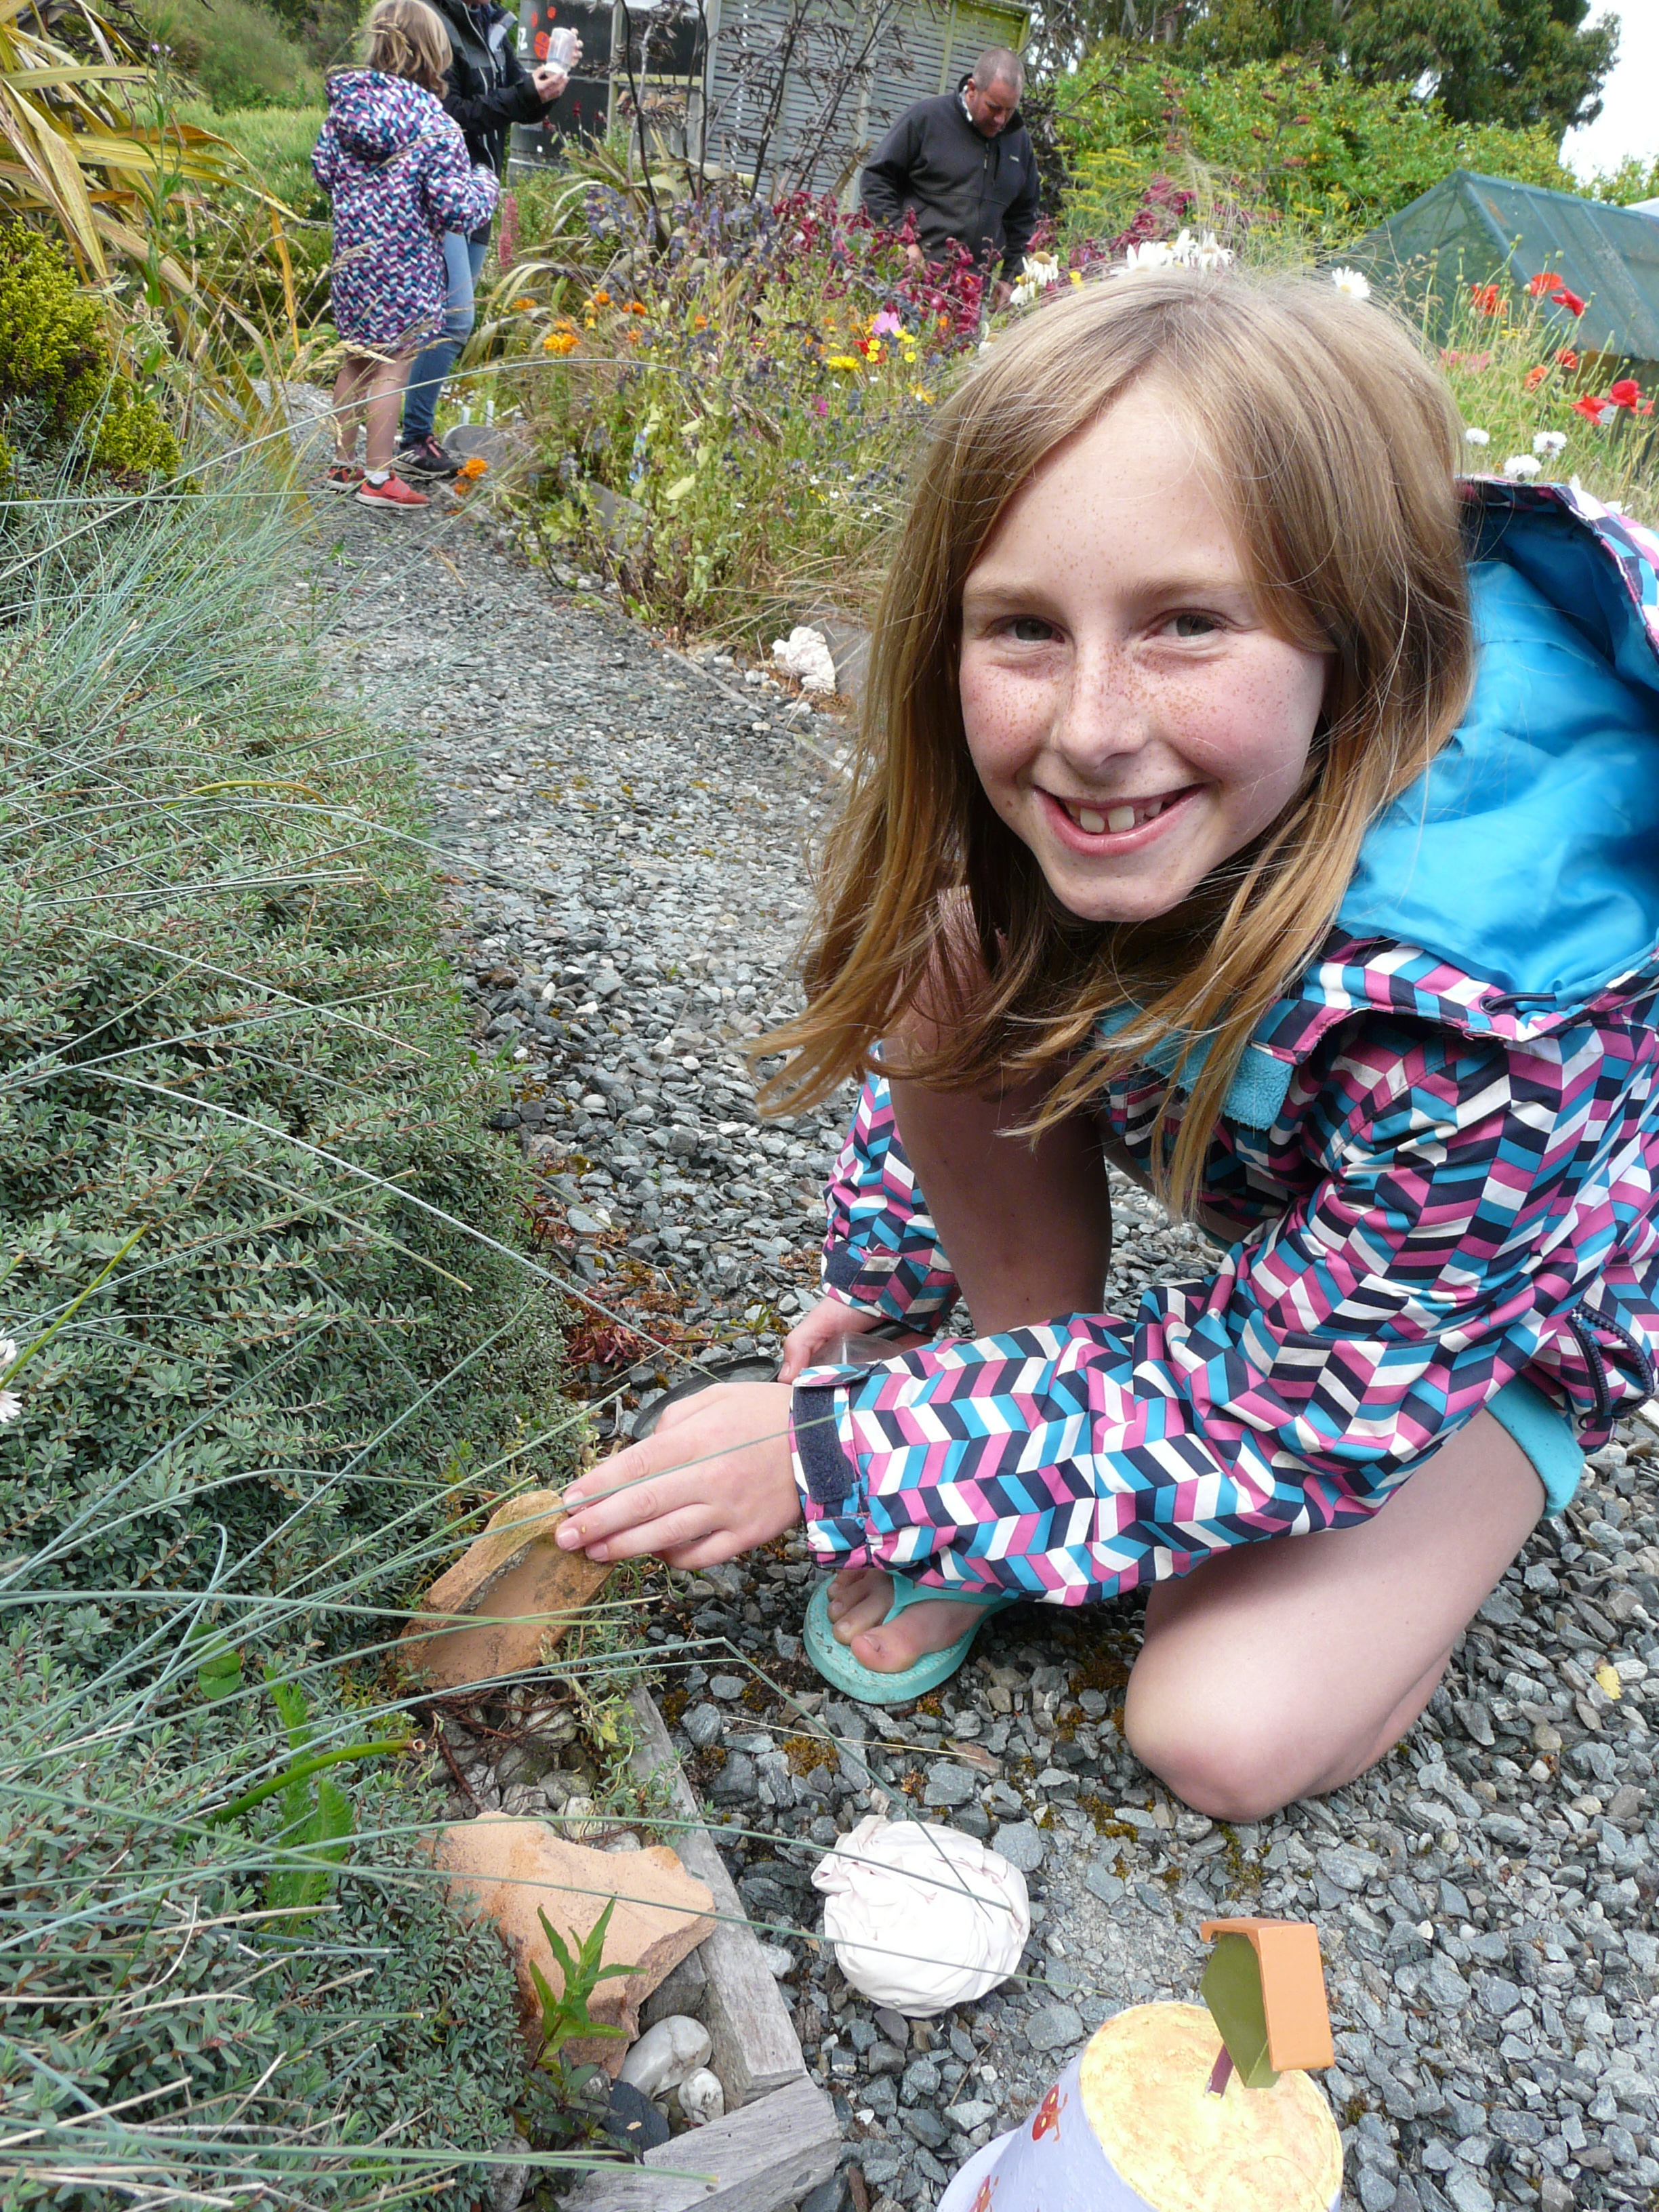 Brooklyn SMith (10), of Balclutha, fossicks for bugs at Earthlore, Owaka yesterday.